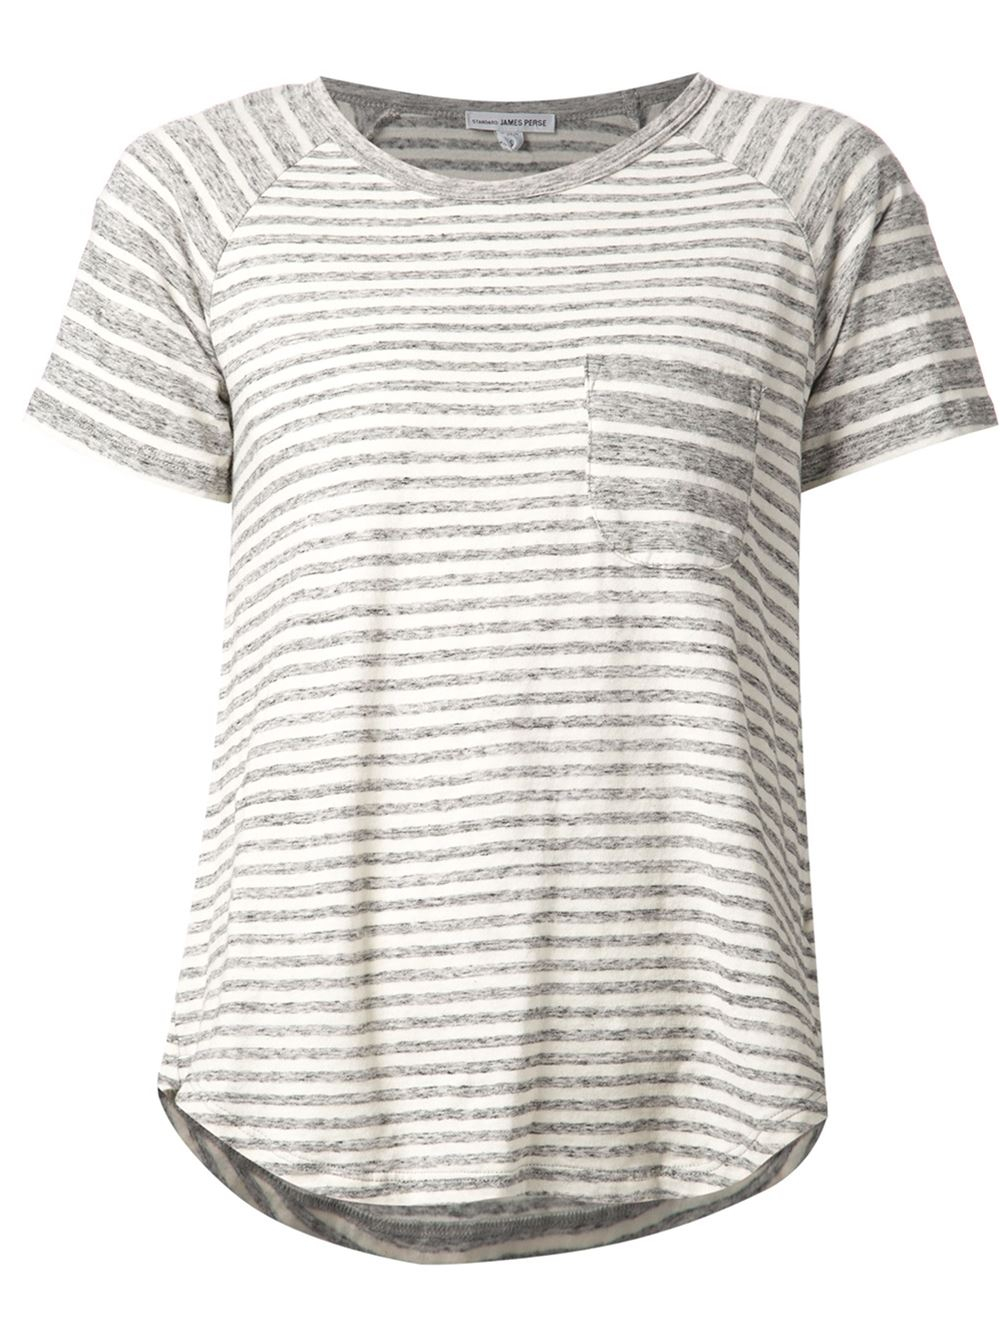 James perse striped raglan t shirt in gray grey lyst for Grey striped t shirt